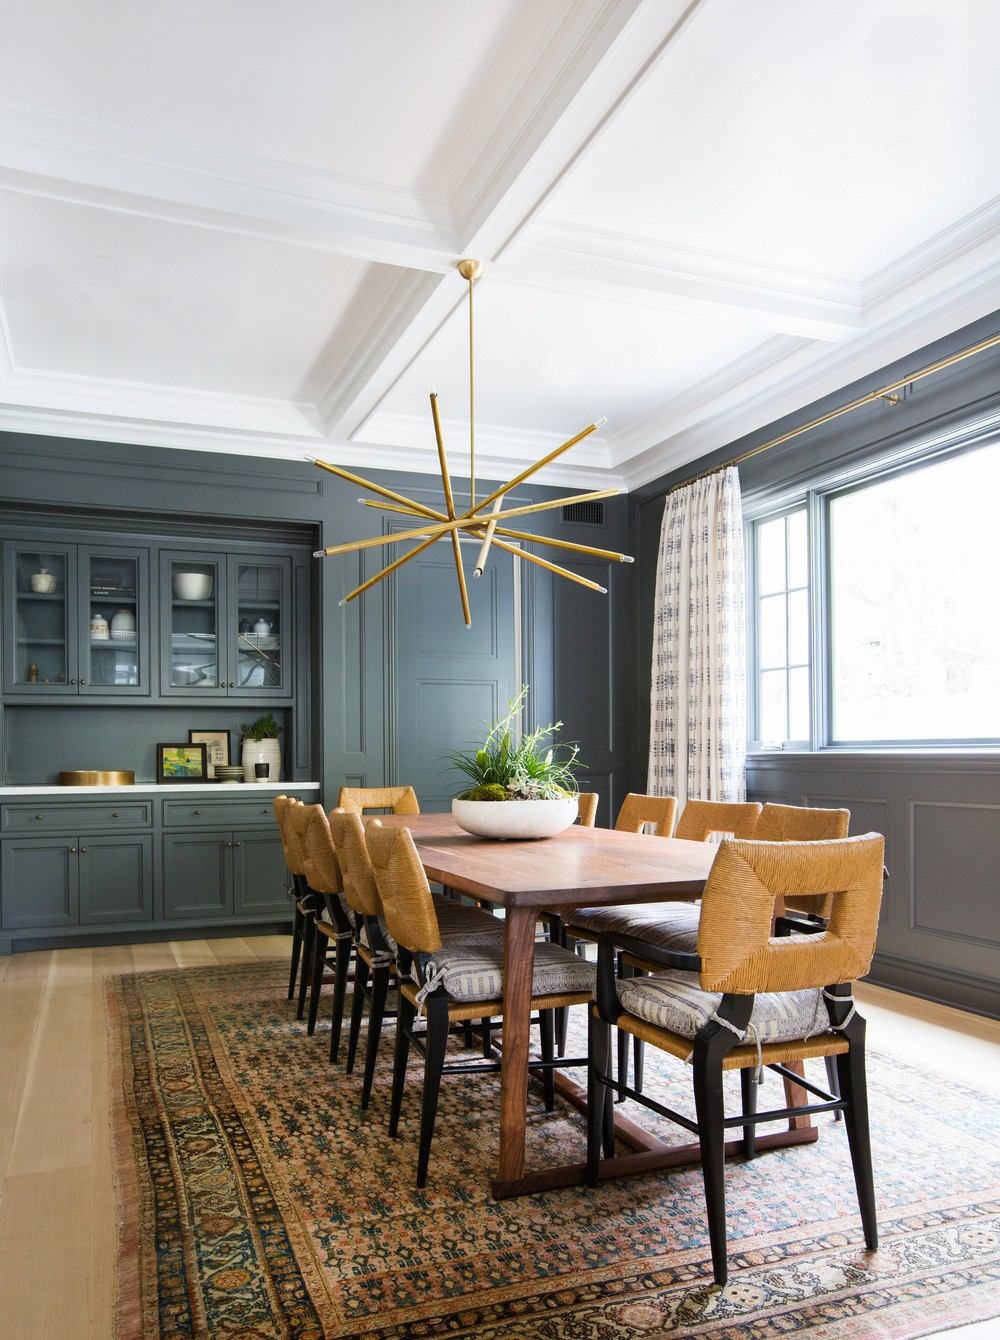 A Laid Back California Aesthetic: Dining Rooms by Amber Interiors amber interiors A Laid Back California Aesthetic: Dining Rooms by Amber Interiors 2 ad